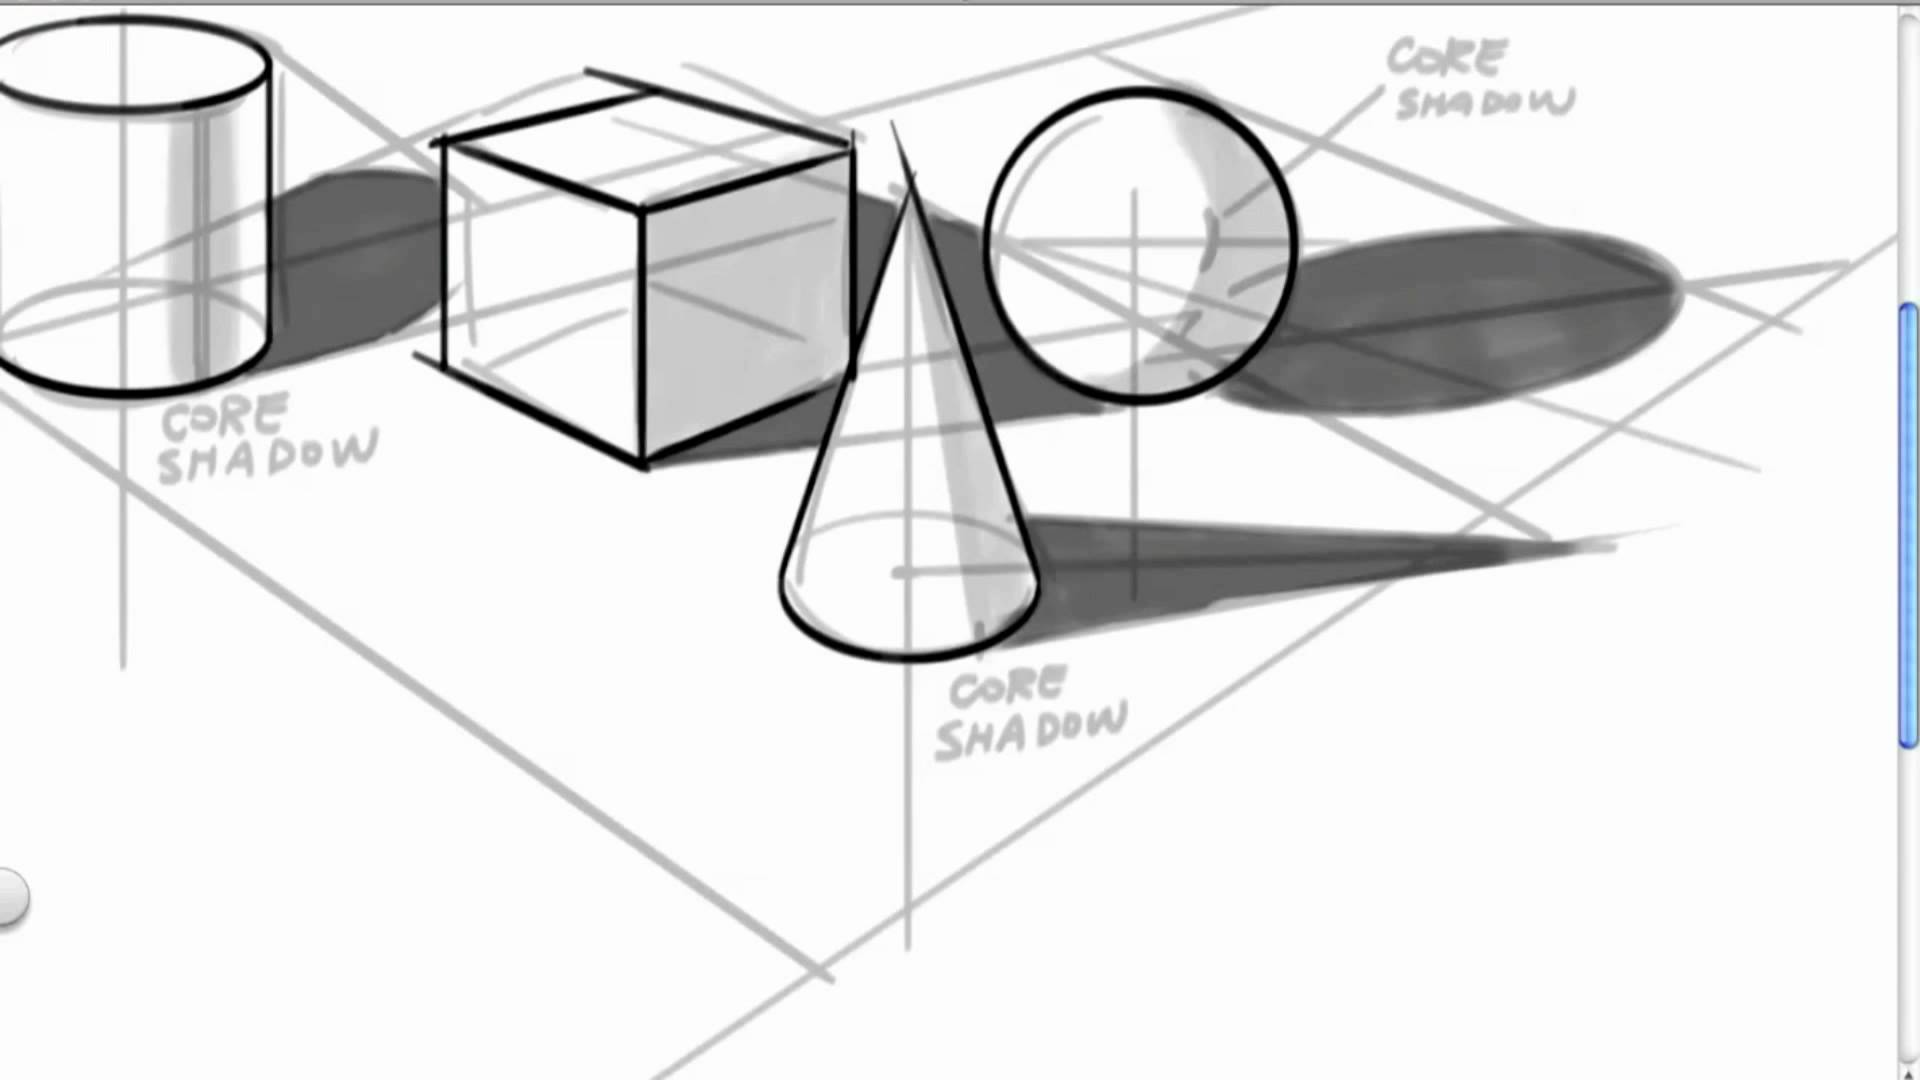 Drawn pyramid point perspective Perspective YouTube in 2 2